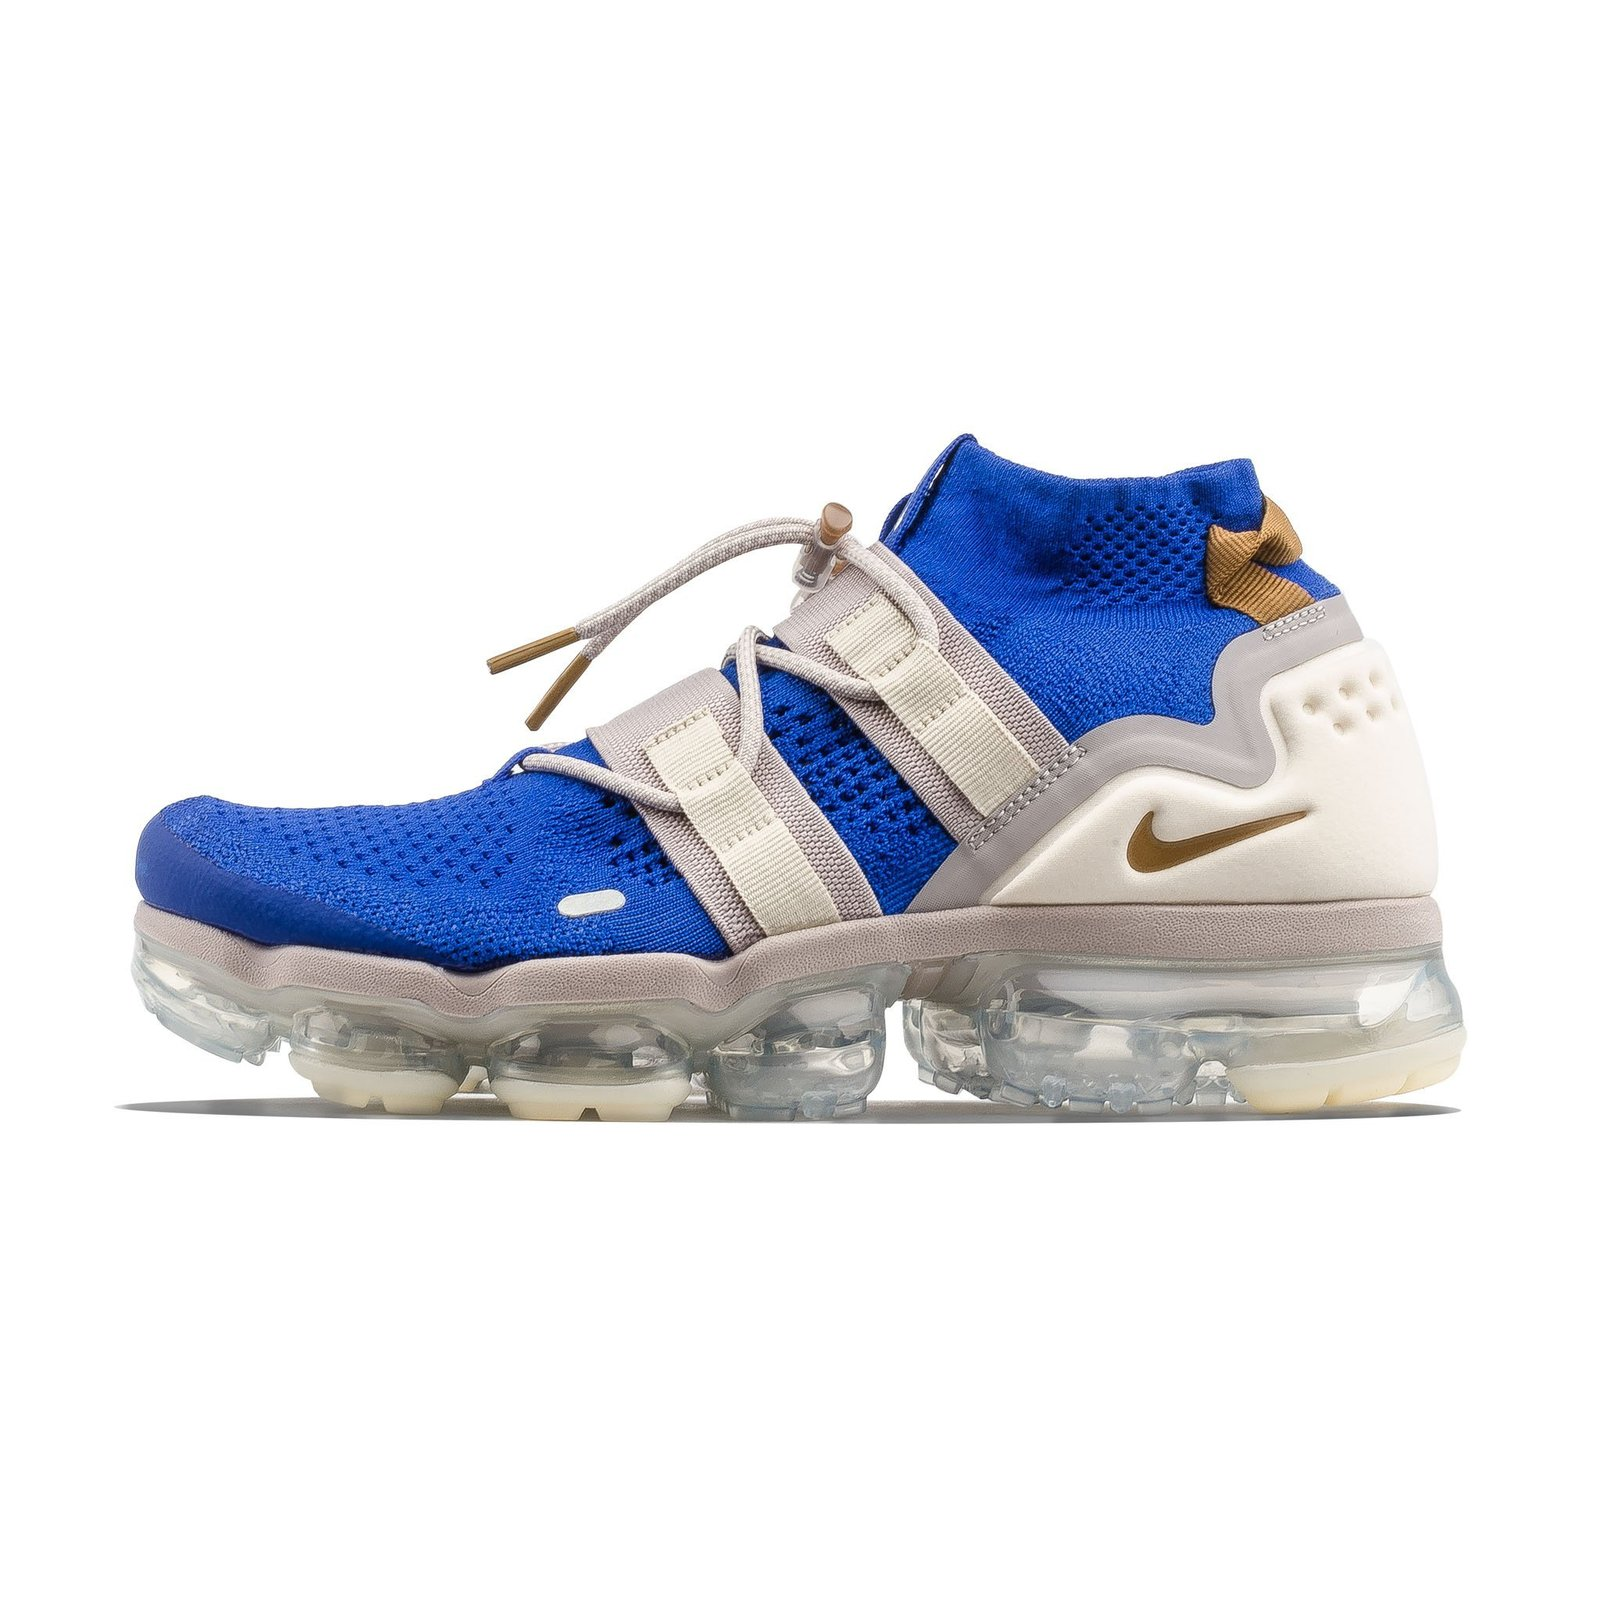 d4254f85f97dd Nike Air VaporMax Flyknit Utility (Racer and 27 similar items. Nike 47  93a60fe4 279c 4205 a7db 66ea39750c54